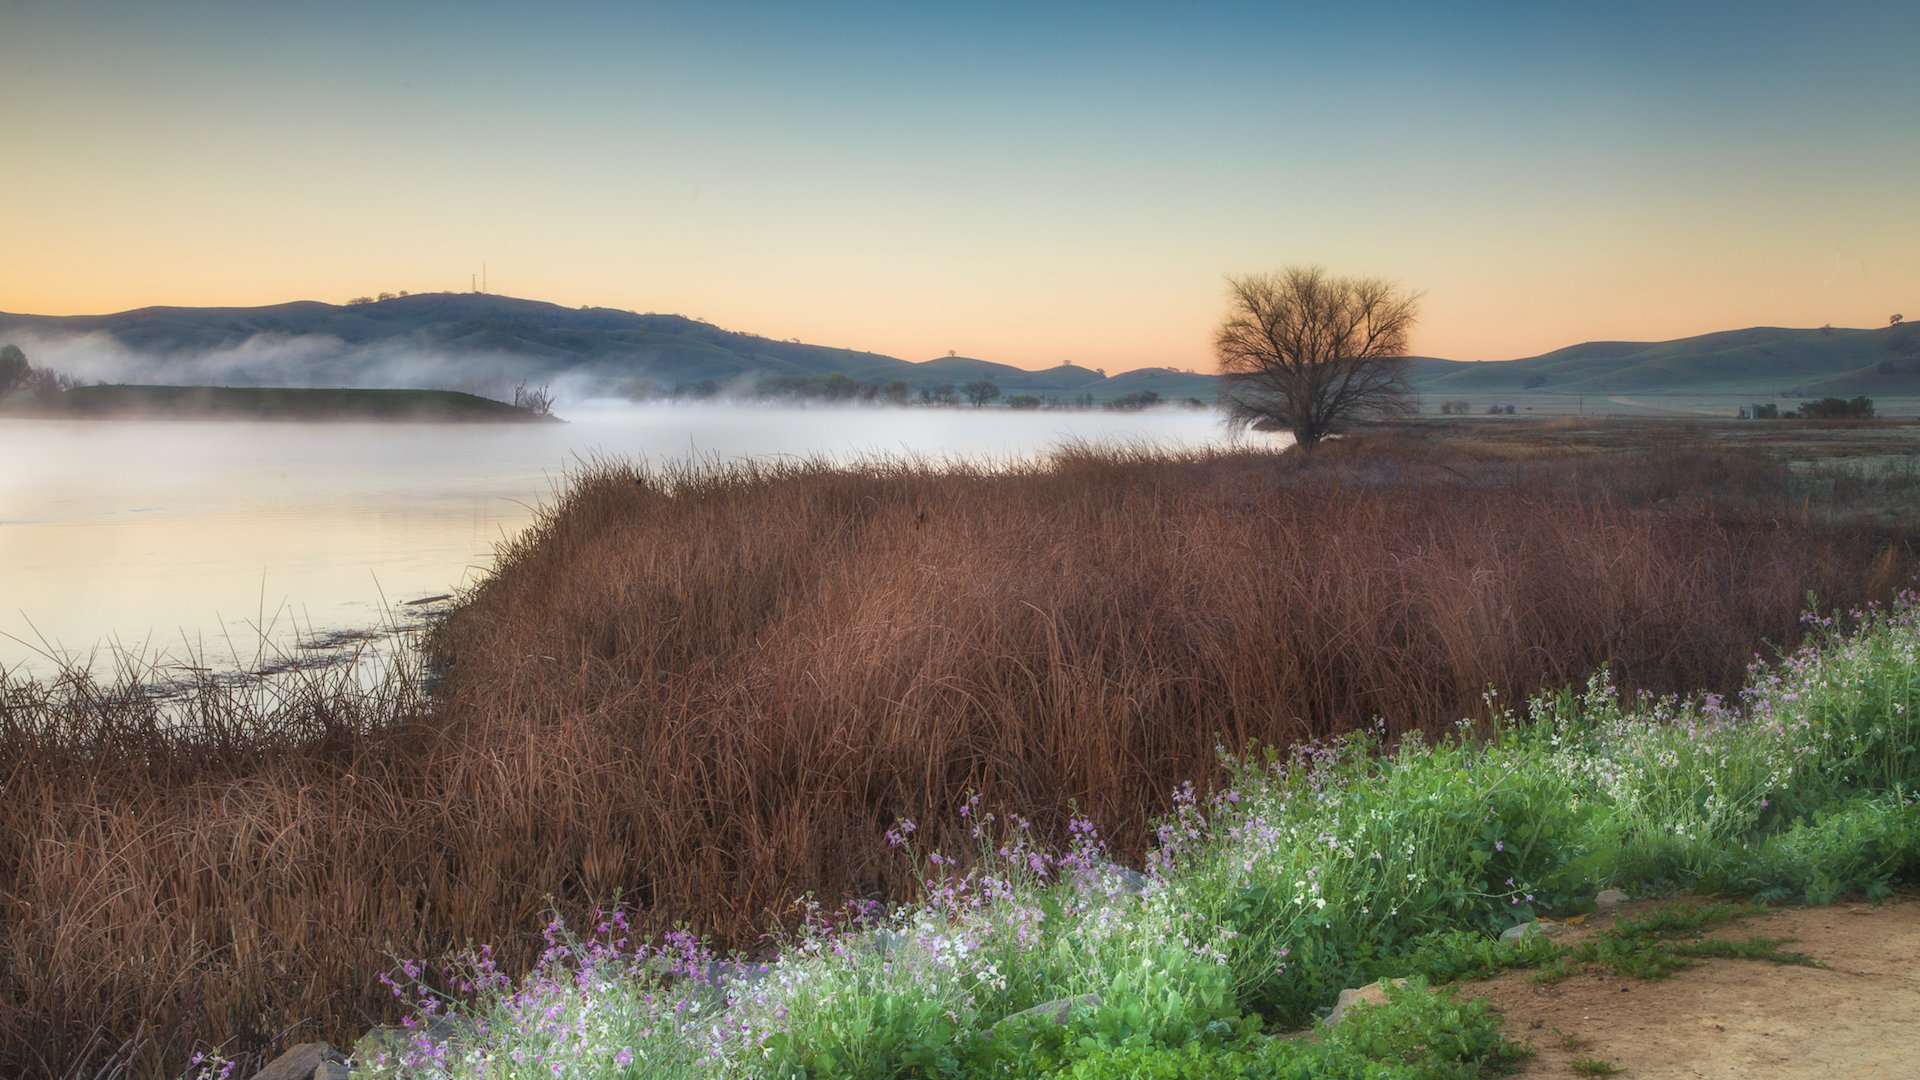 Vacaville's Mediterranean climate and open spaces make for an outdoor lover's paradise